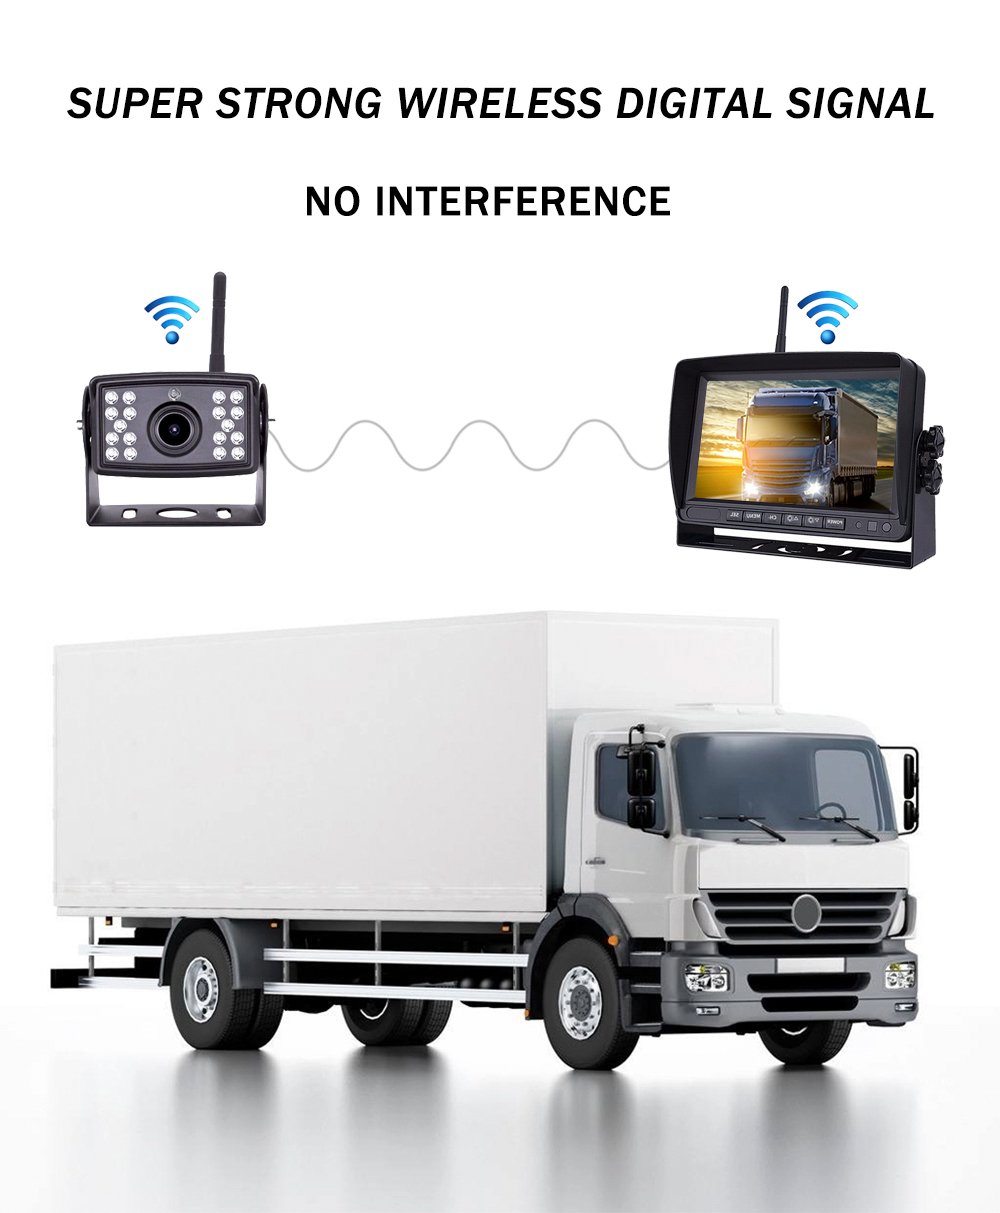 Wireless Rv Truck Trailer Bus Forklift 4 Channel Video Record 7 Inch Monitor Infrared Reverse Backup Quad View Camera System 28